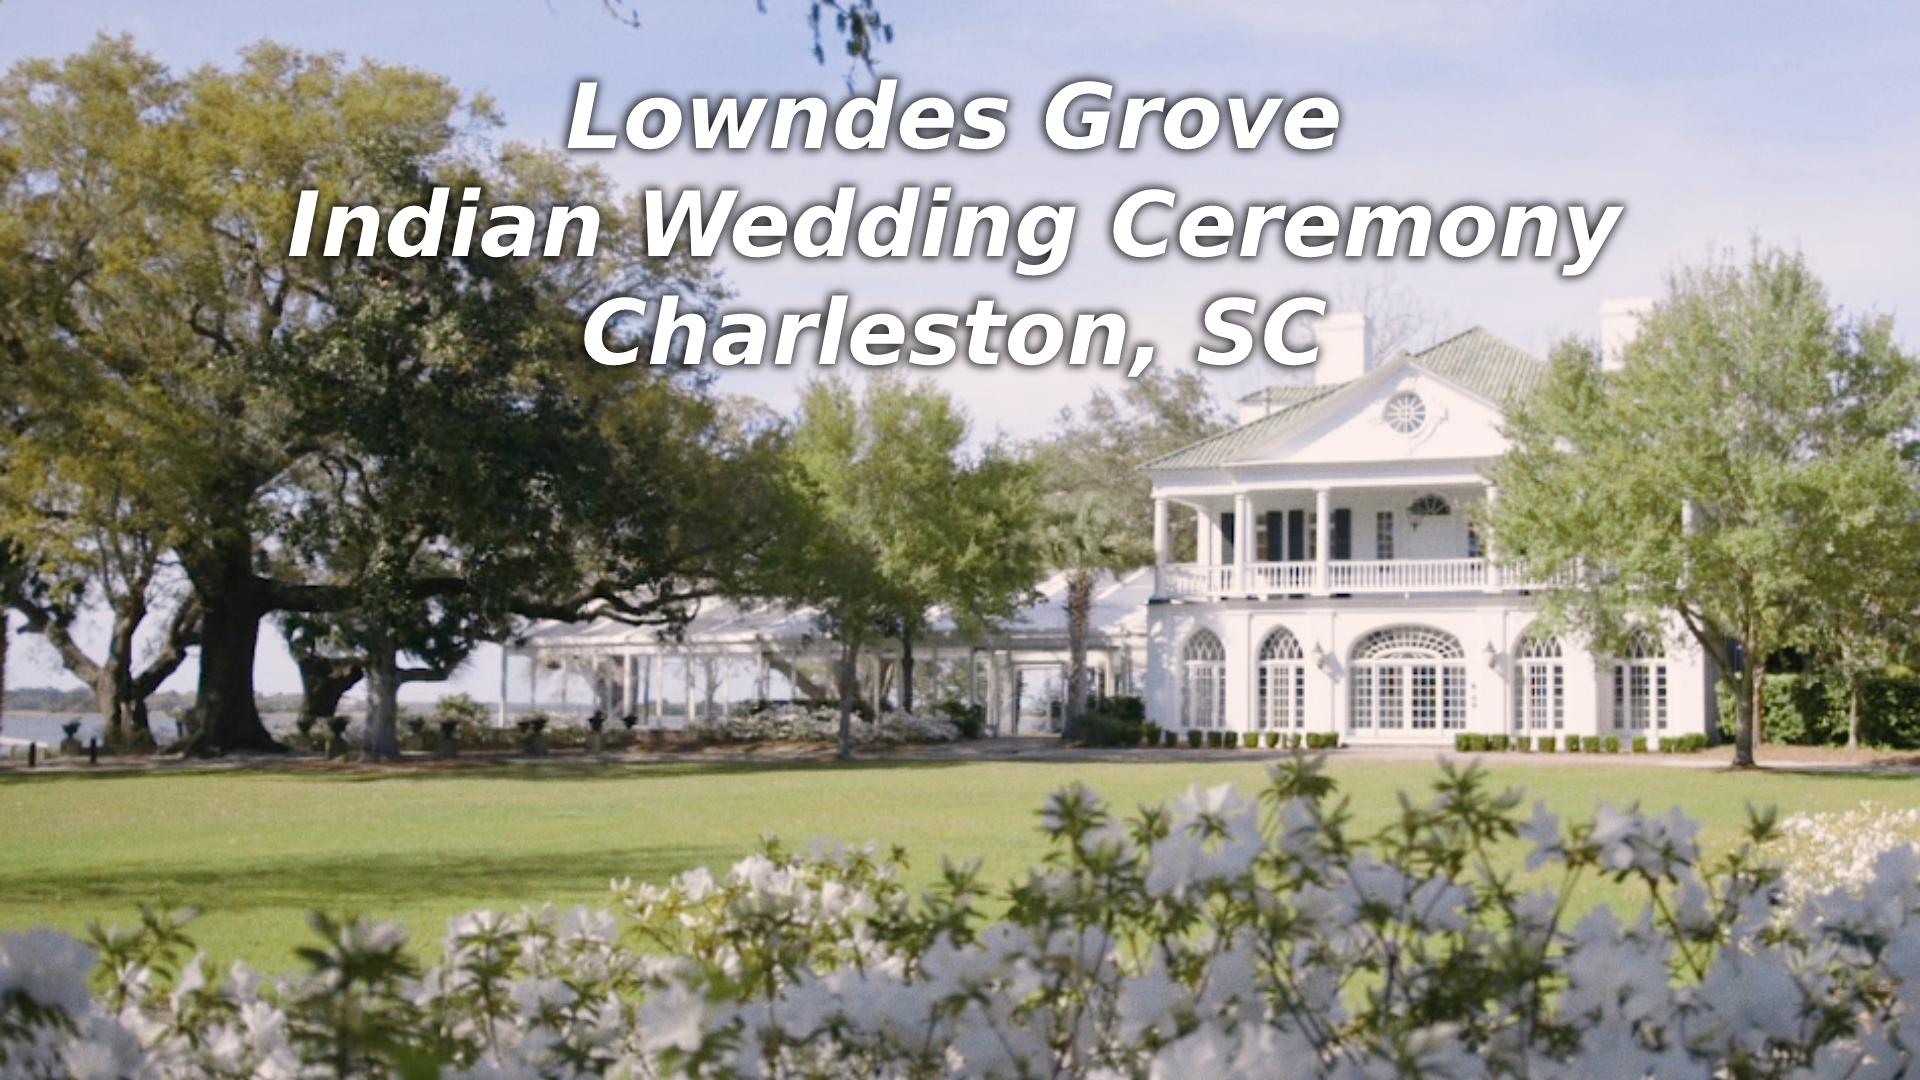 Lowndes Grove